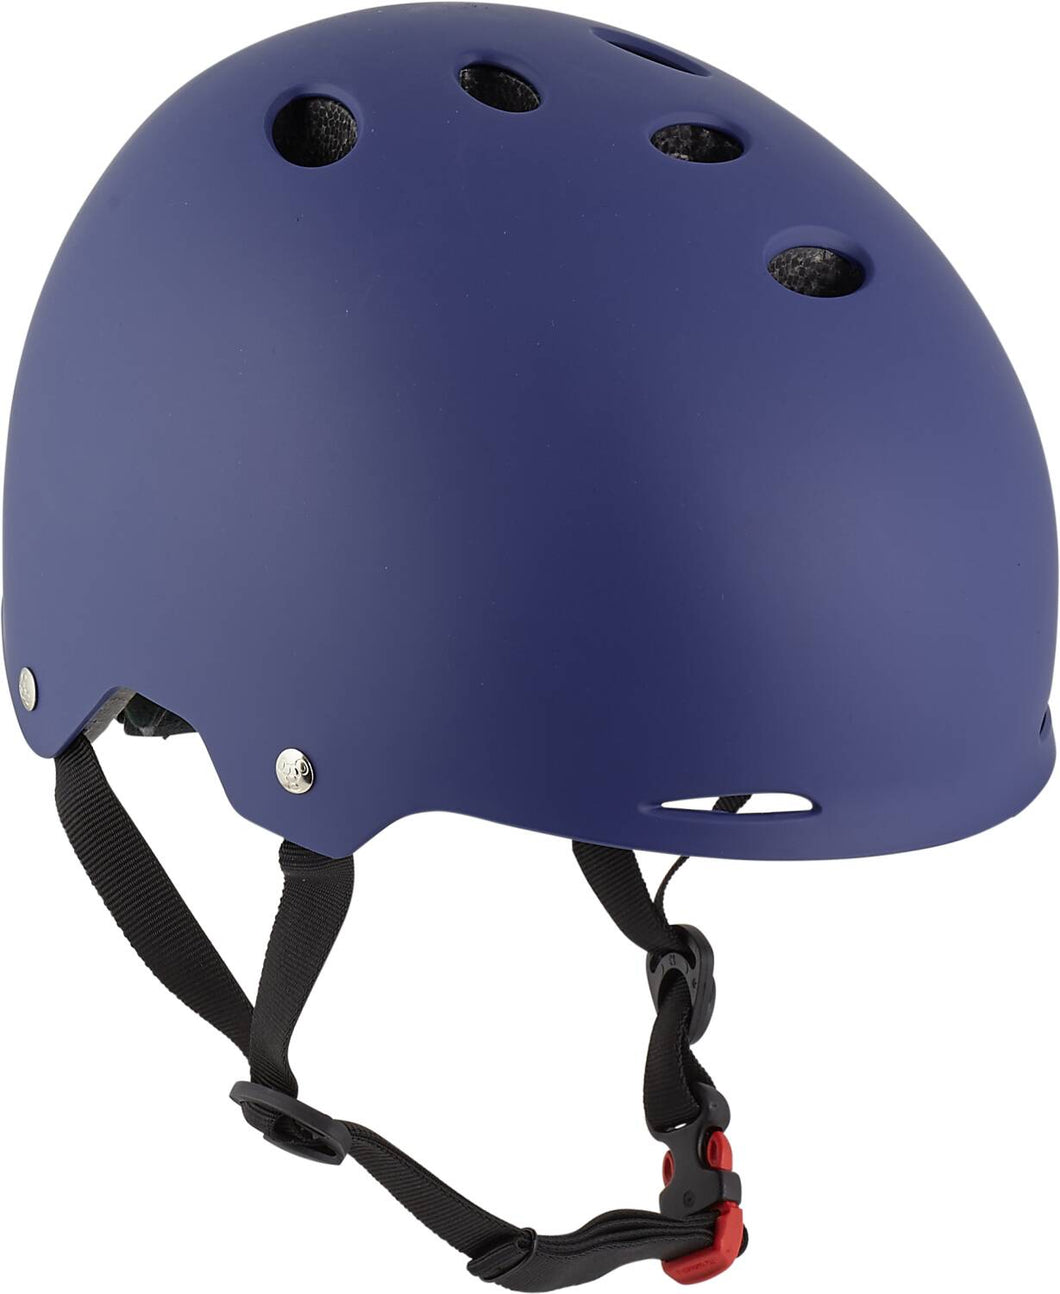 Triple Eight Gotham Mips Helmet - Blau